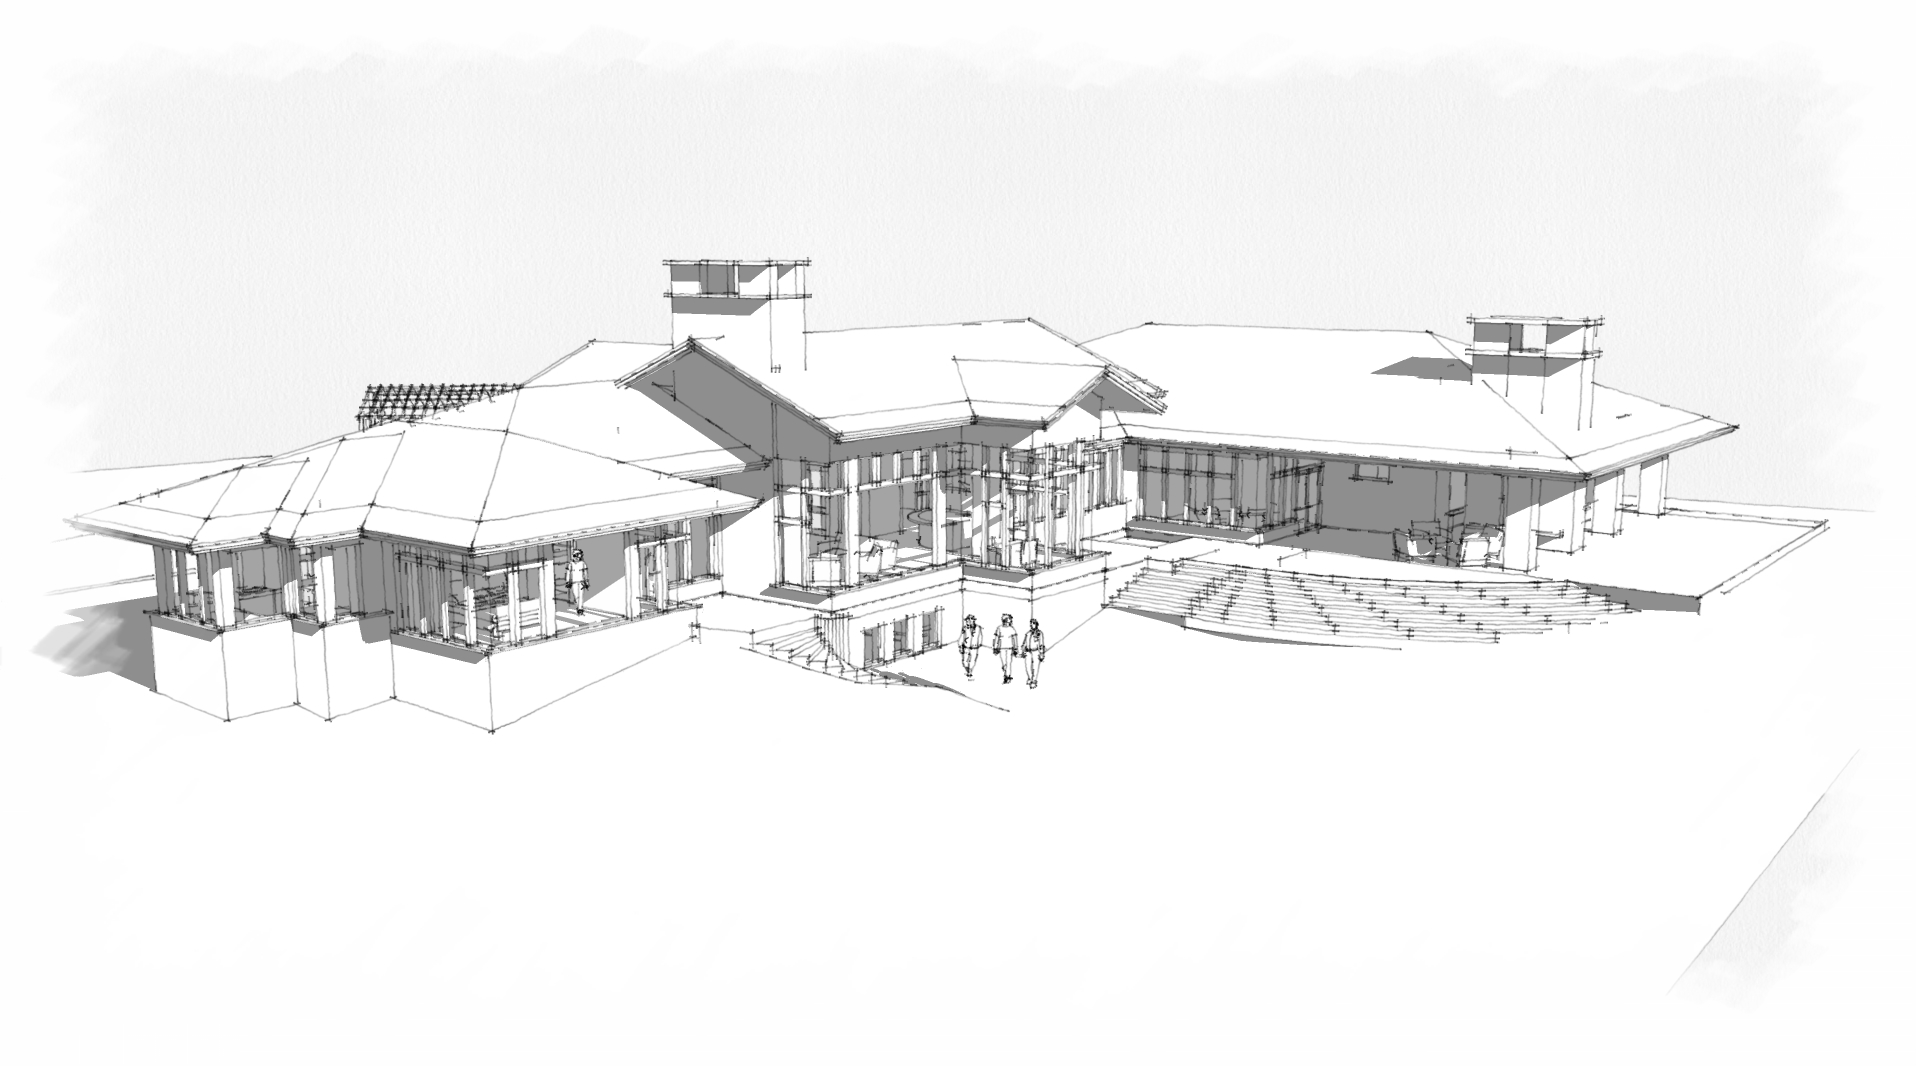 COLOROW ROAD RESIDENCE SKETCH